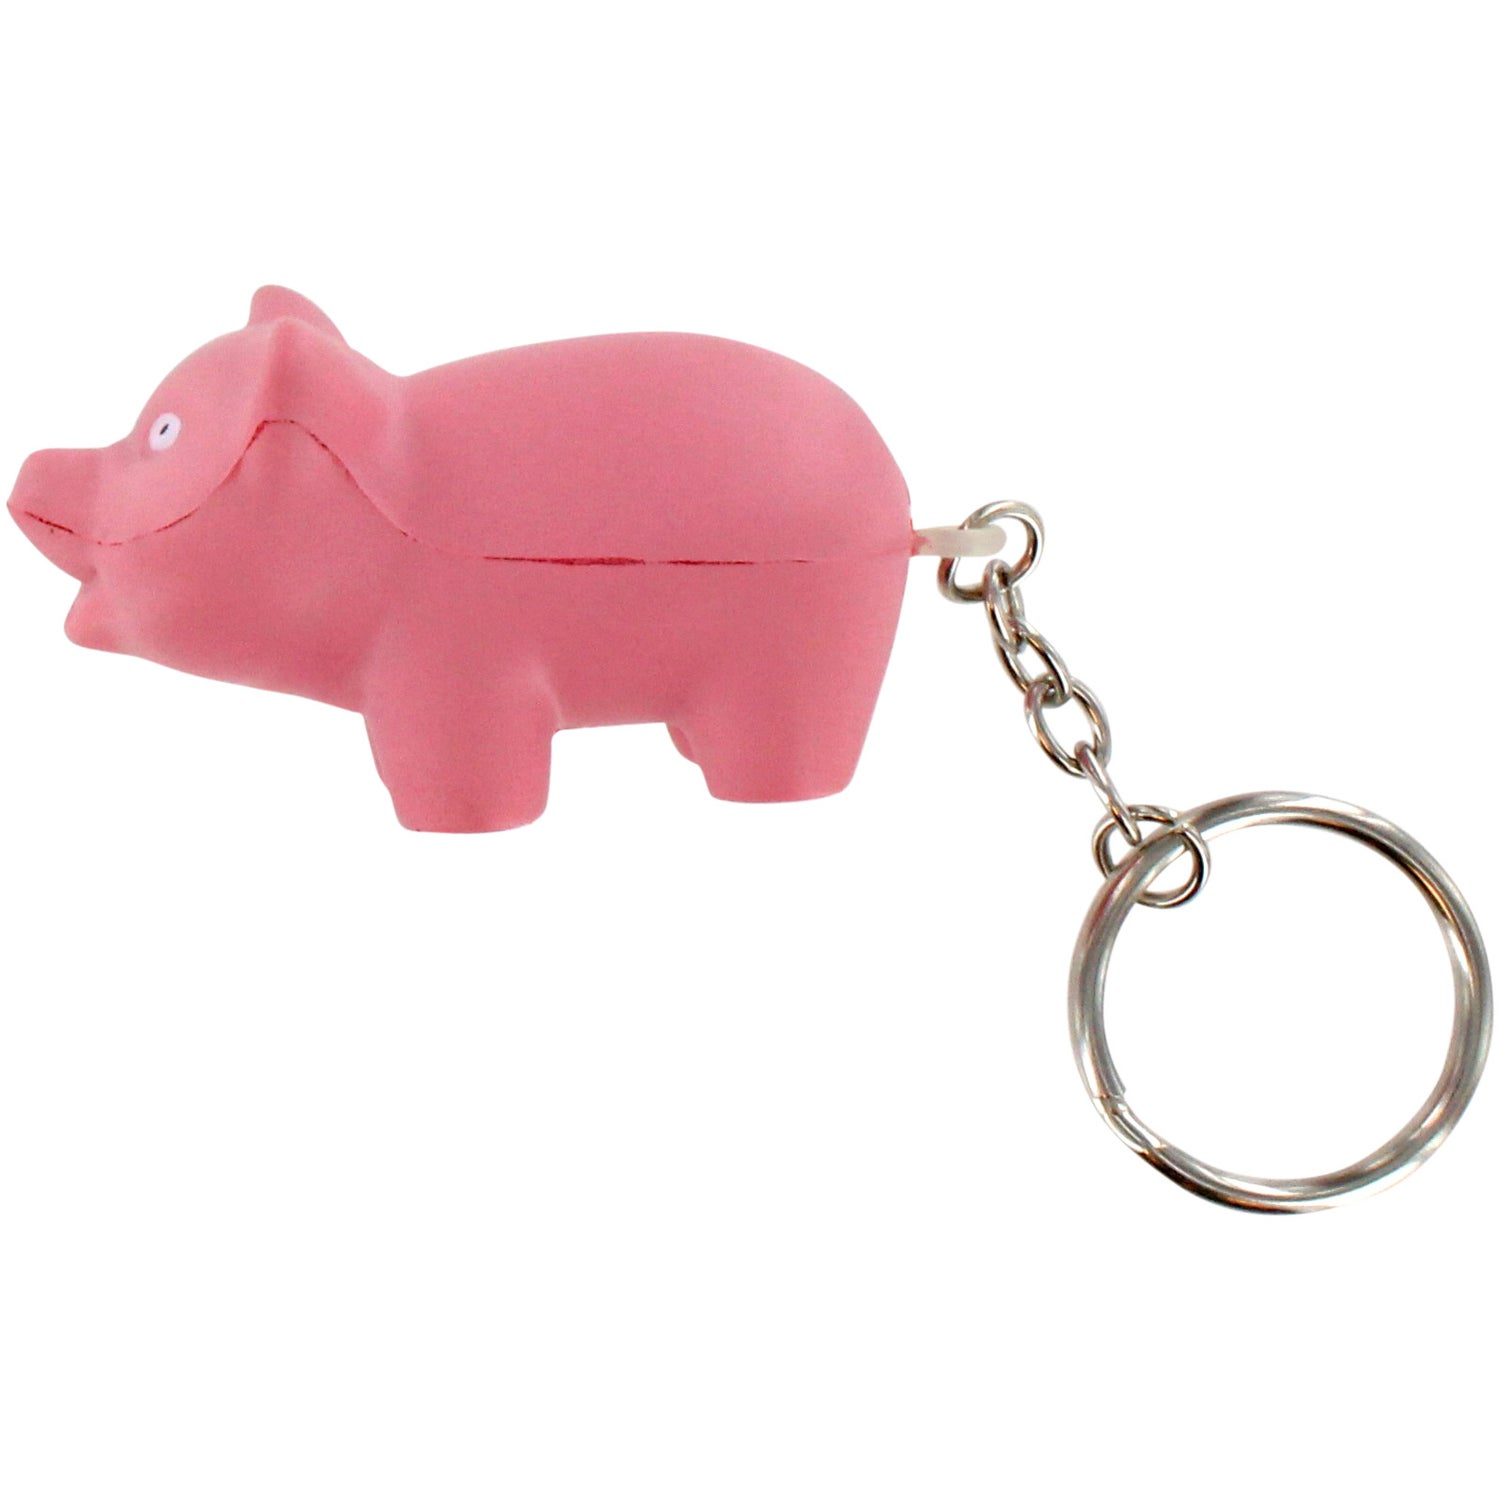 Promotional Pig Stress Ball Key Chains with Custom Logo for  1.58 Ea. 0d5a54b3d952